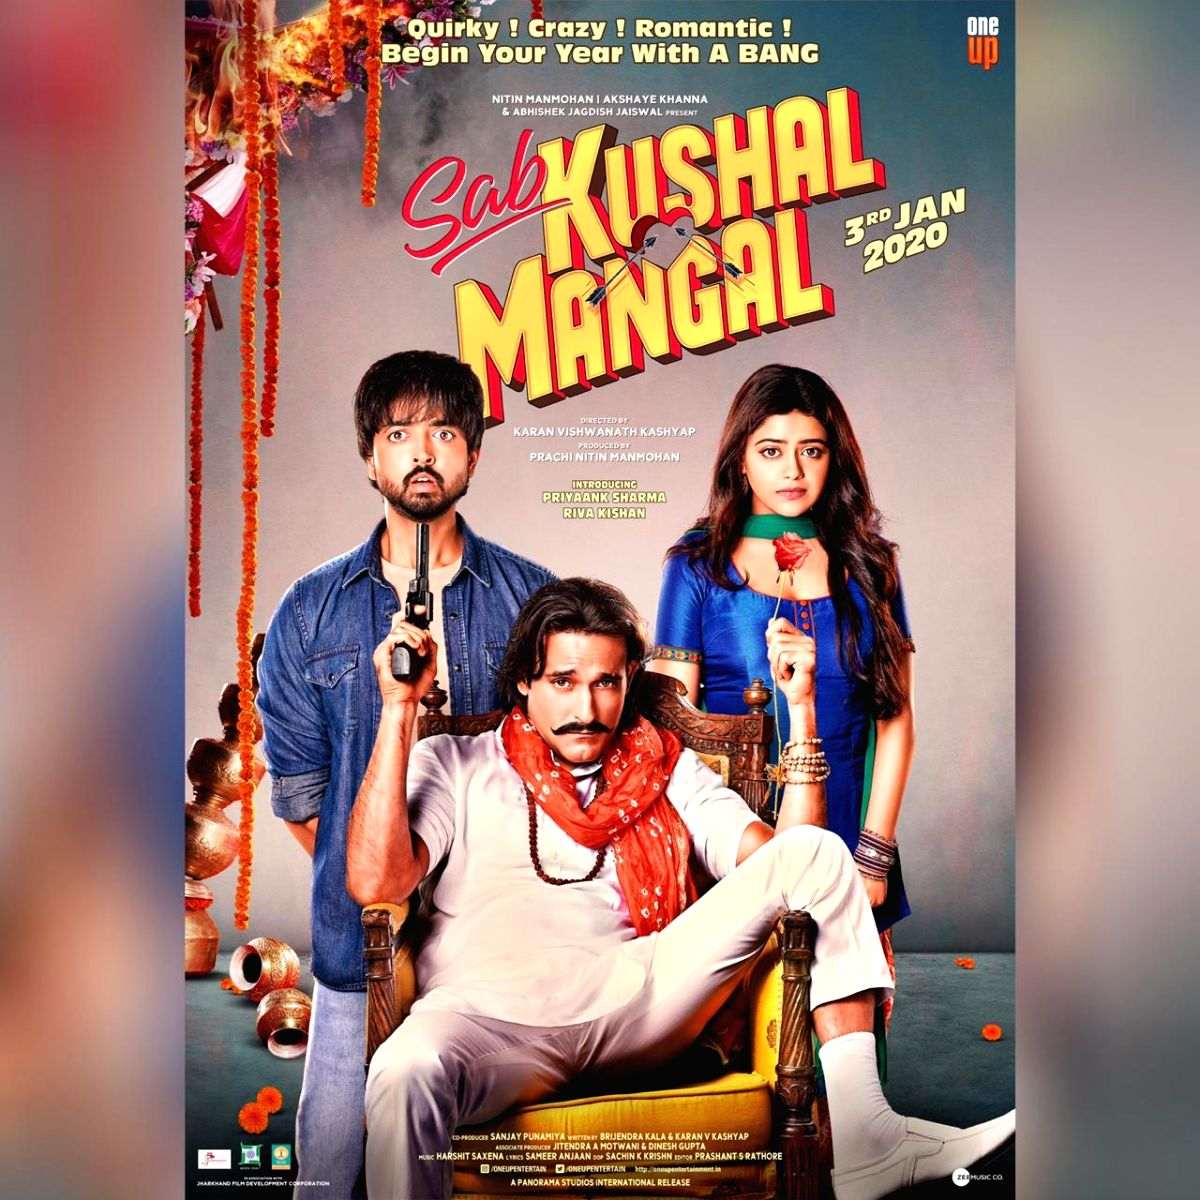 """Sab Kushal Mangal"""", starring Akshaye Khanna will hit the screens in January next year. The movie slated to release on January, 3 will star debutant actors Priyaank Sharma and Riva Kishan, son of actress Padmini Kolhapure, and daughter of actor Ravi K"""